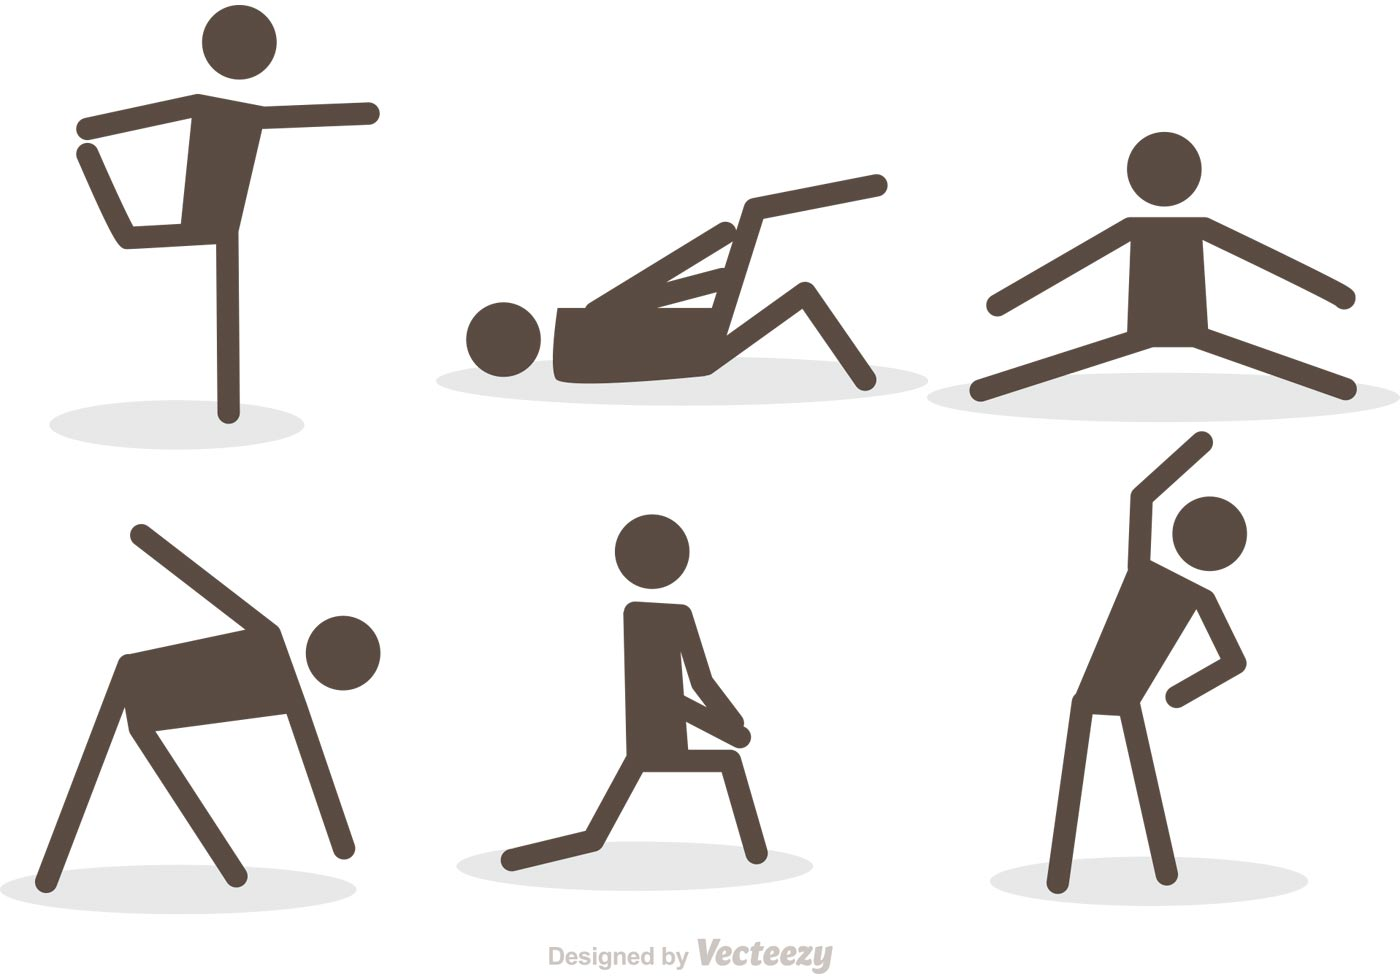 Workout Stick Figure Icons Vector Pack - Download Free ...